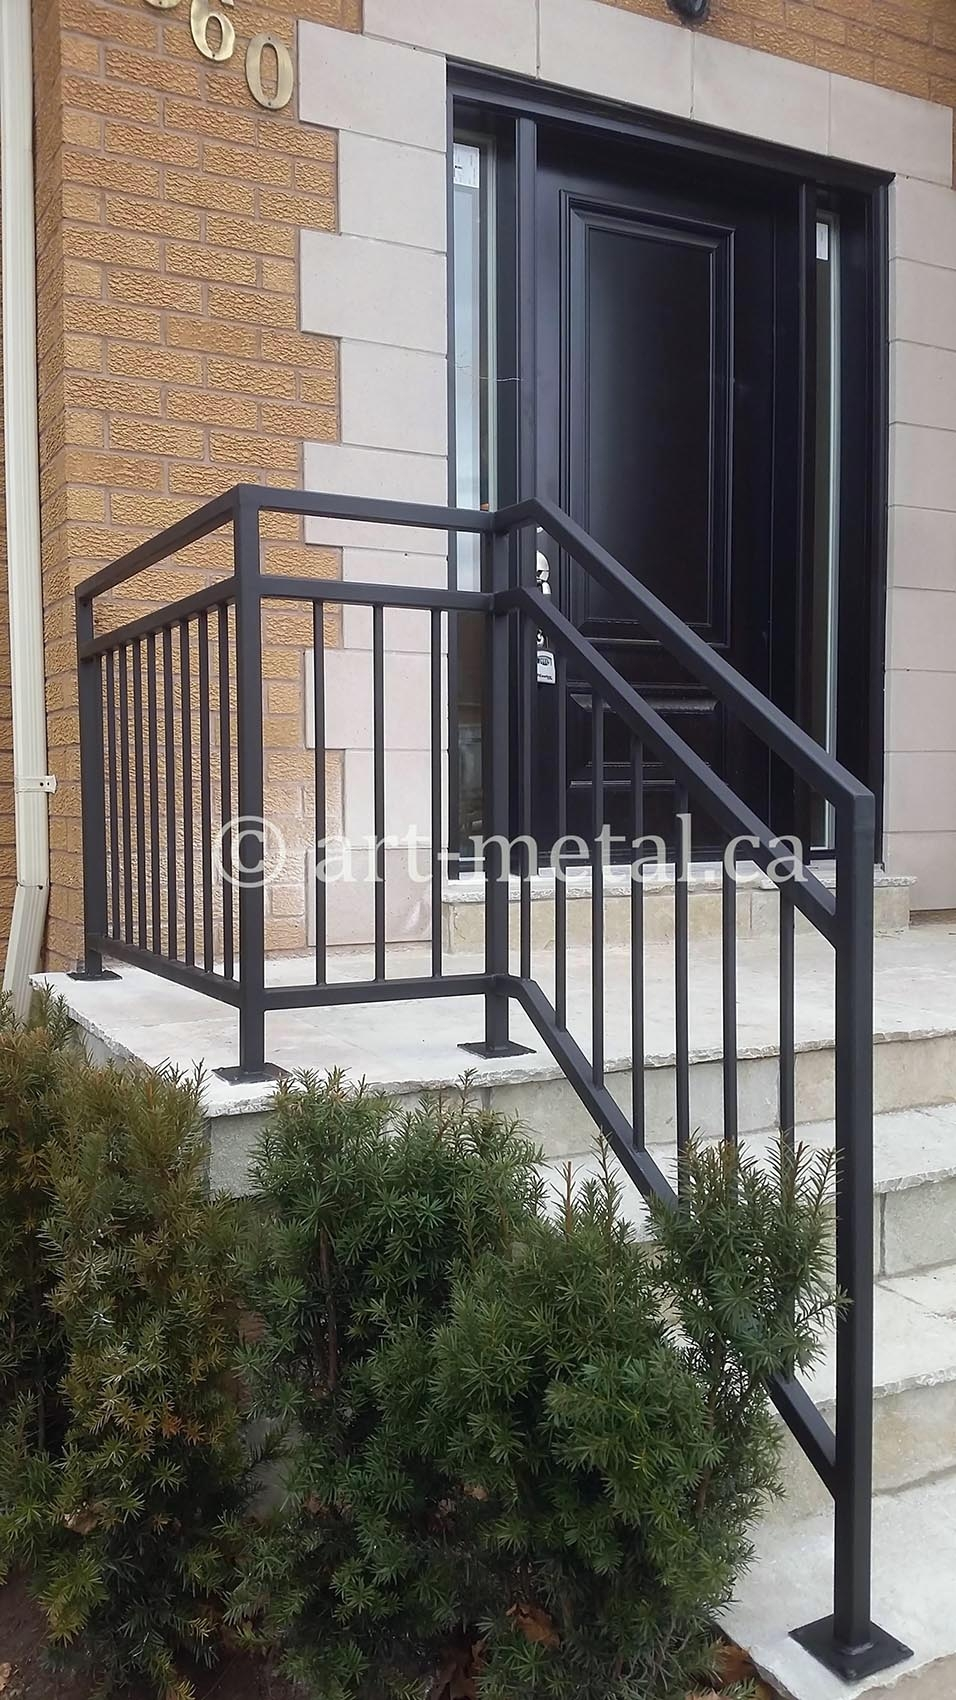 Exterior Railings Handrails For Stairs Porches Decks   Aluminum Railing For Outside Steps